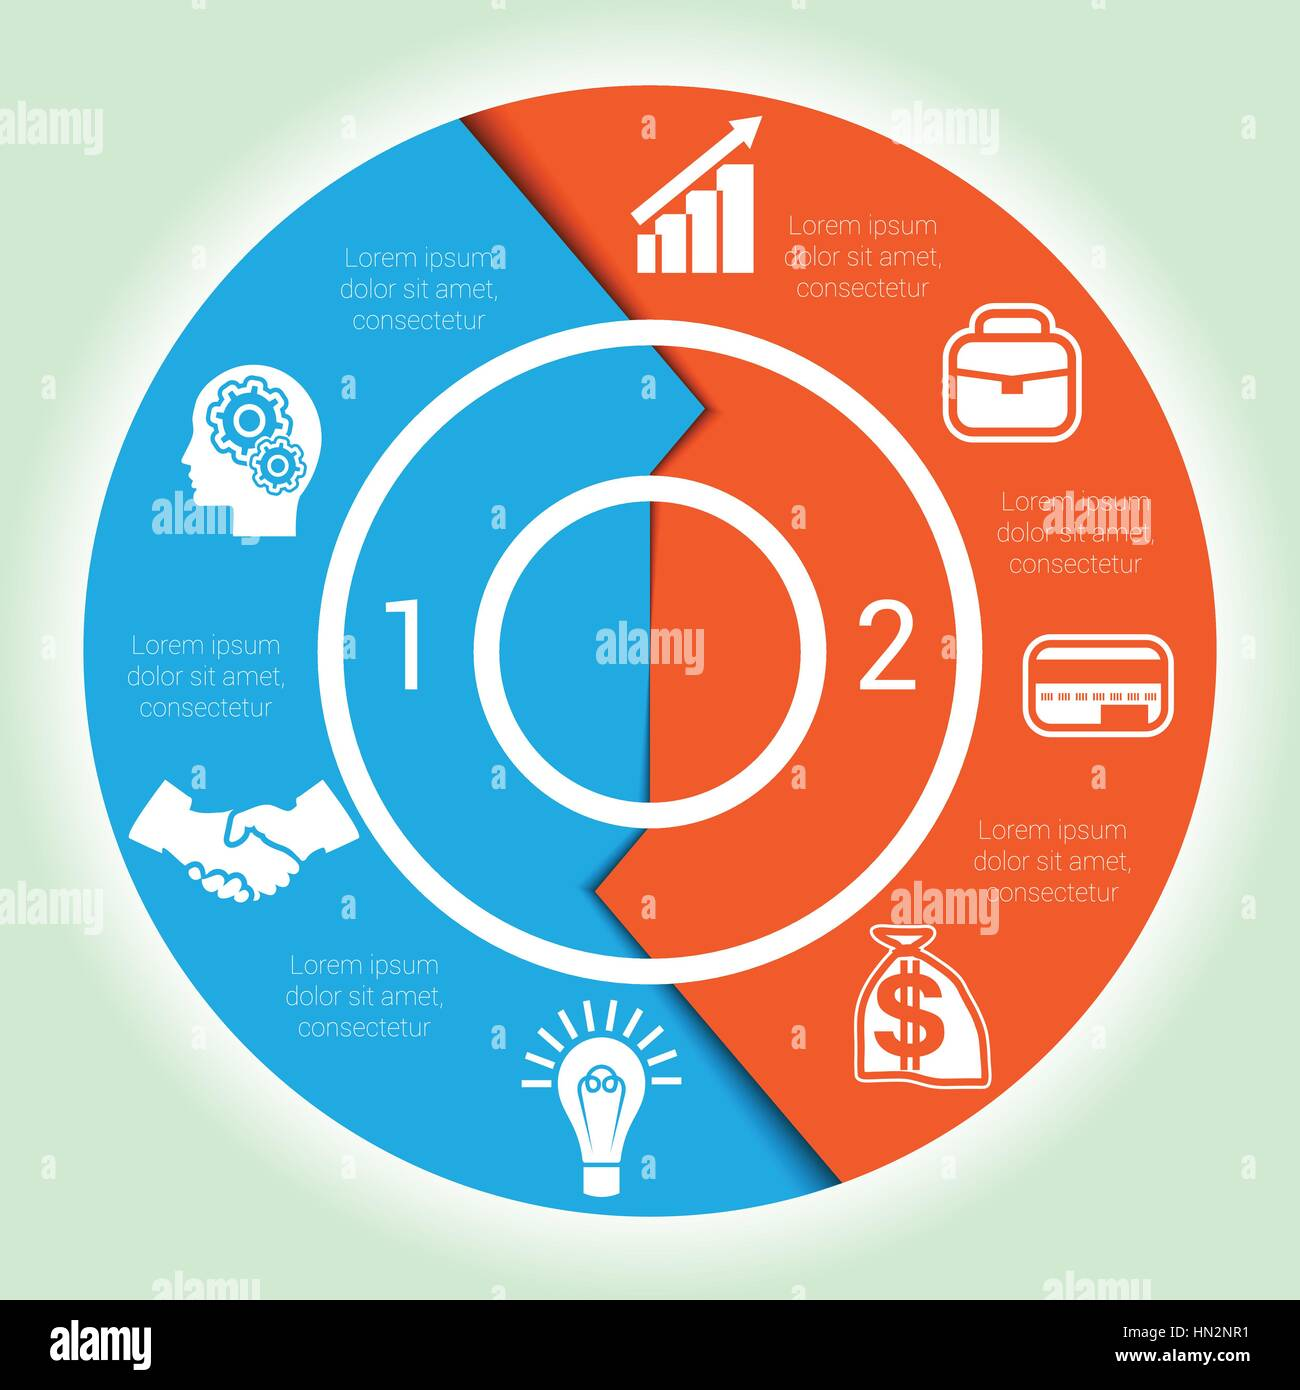 hight resolution of template cyclic diagramme for infographic two position area chart ring arrows pie chart stock